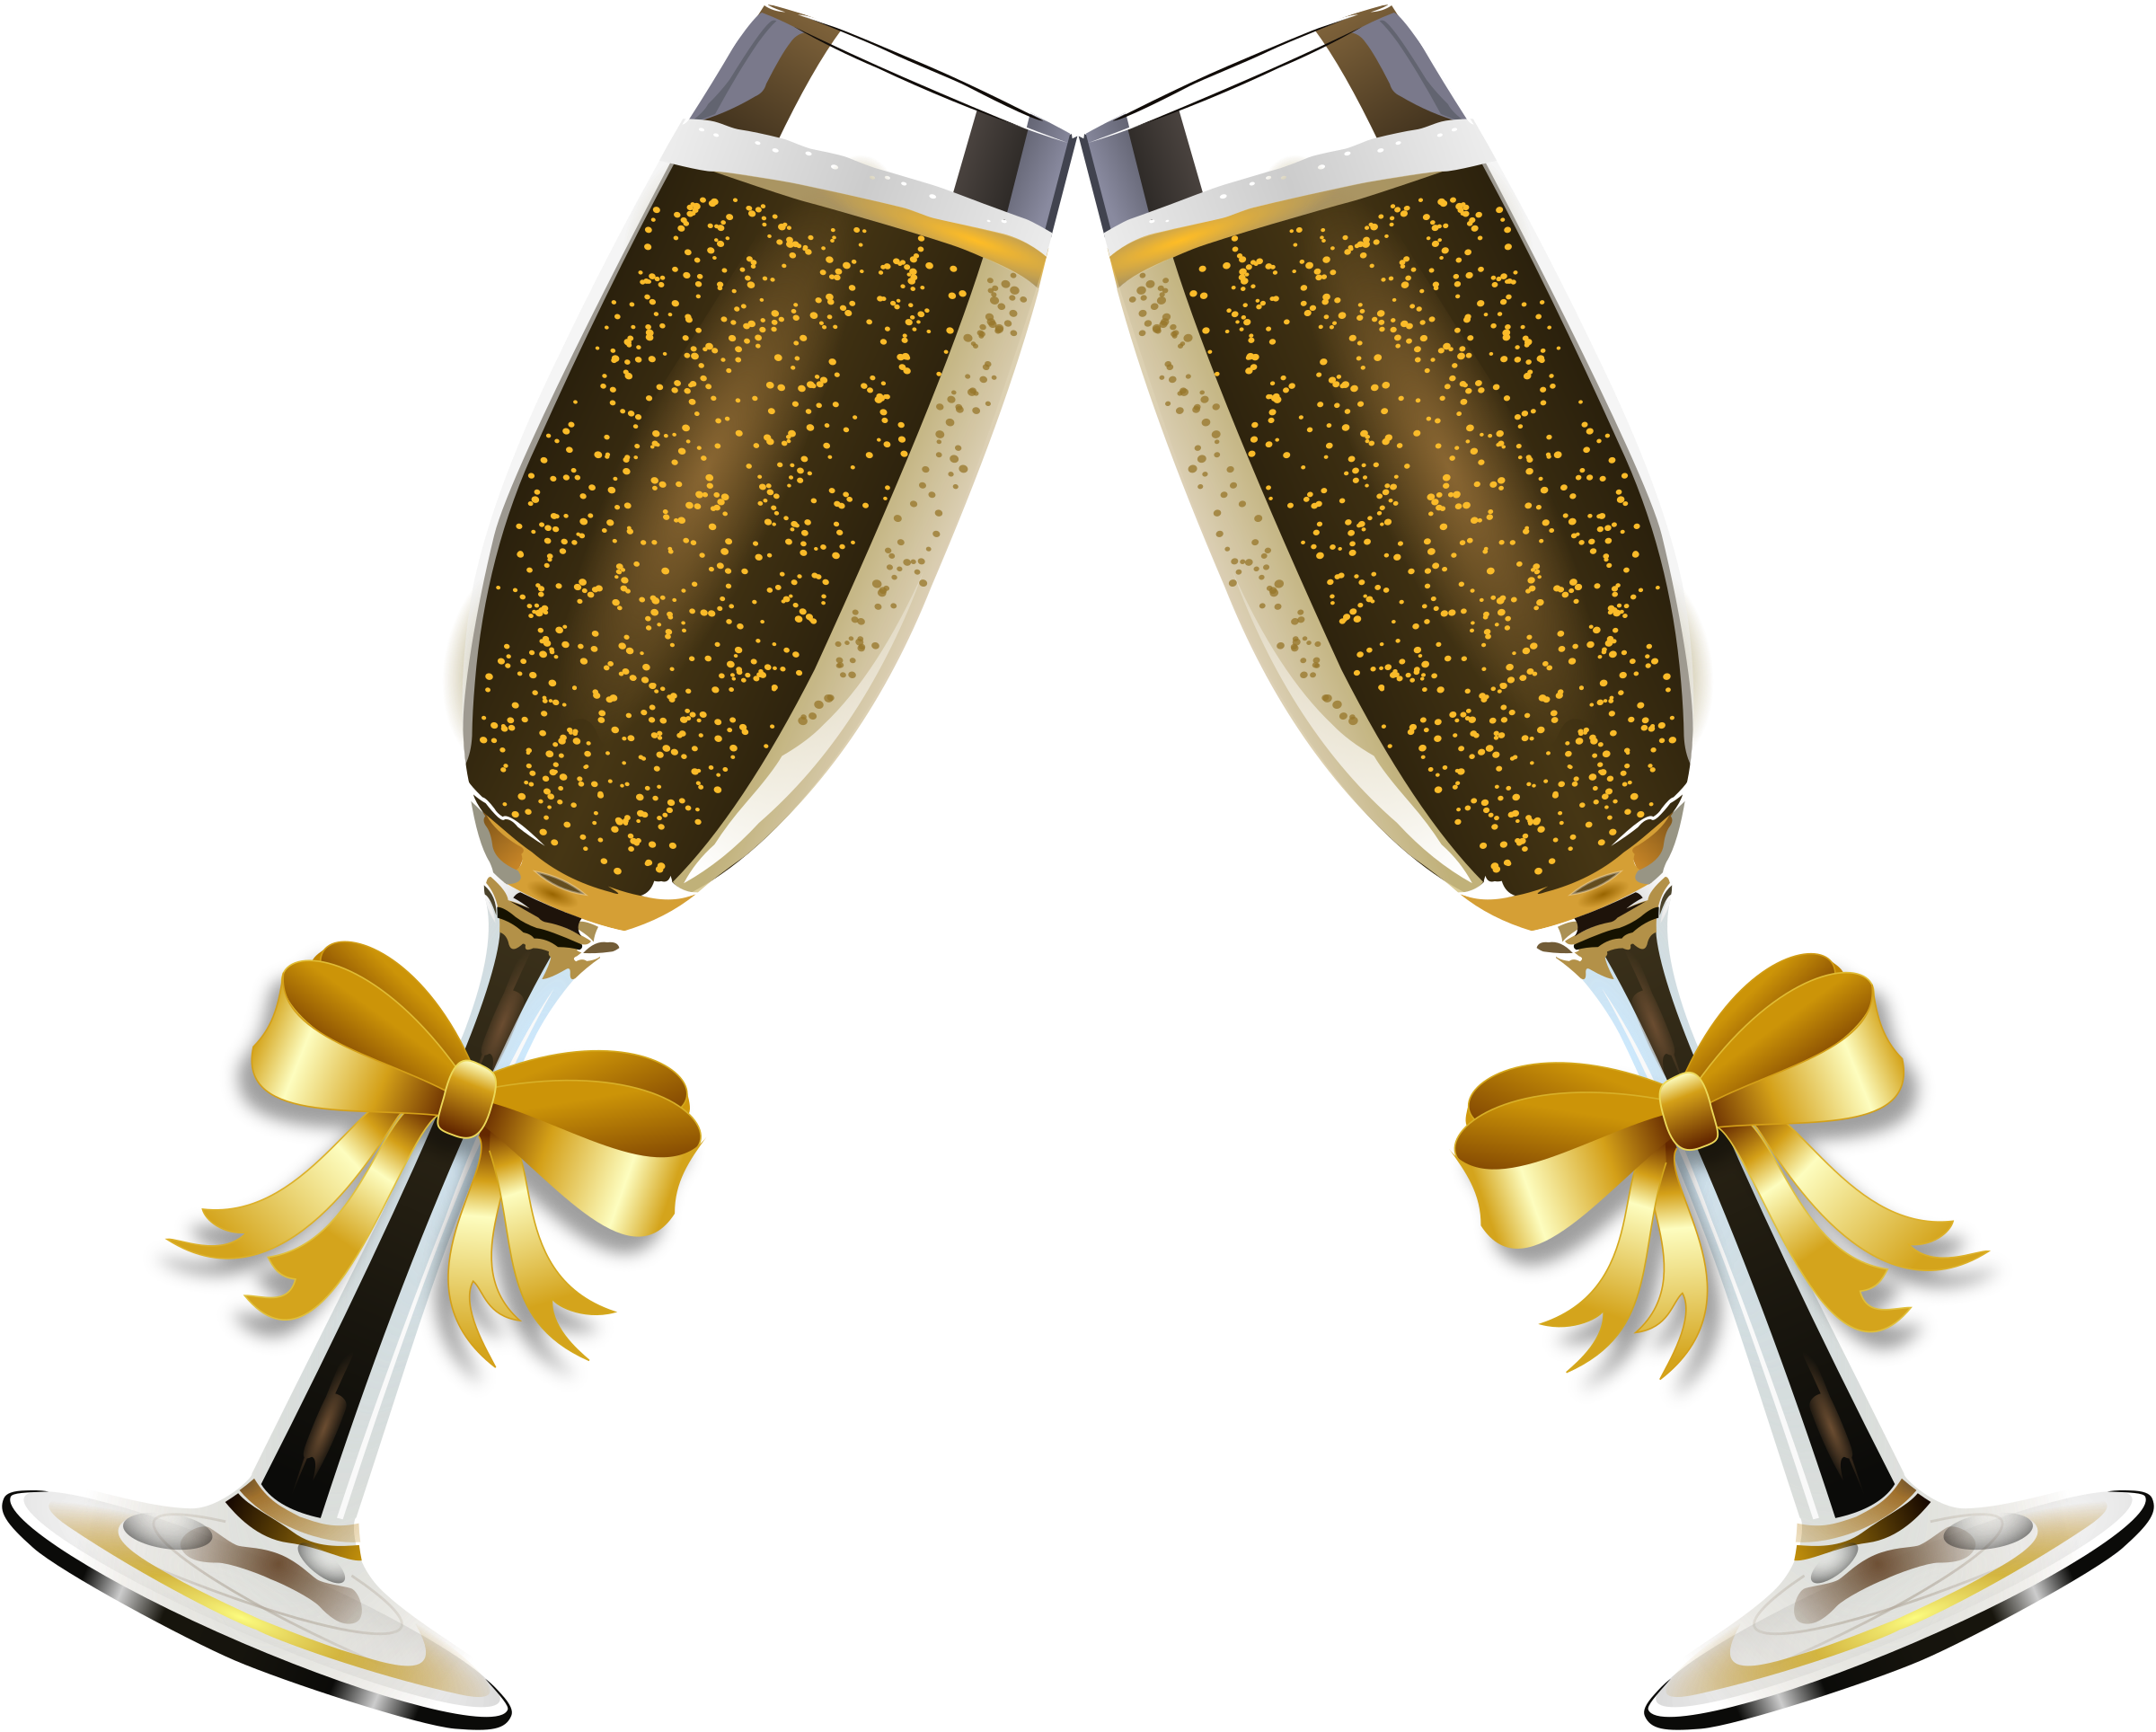 Remix big image png. Anniversary clipart champagne glass